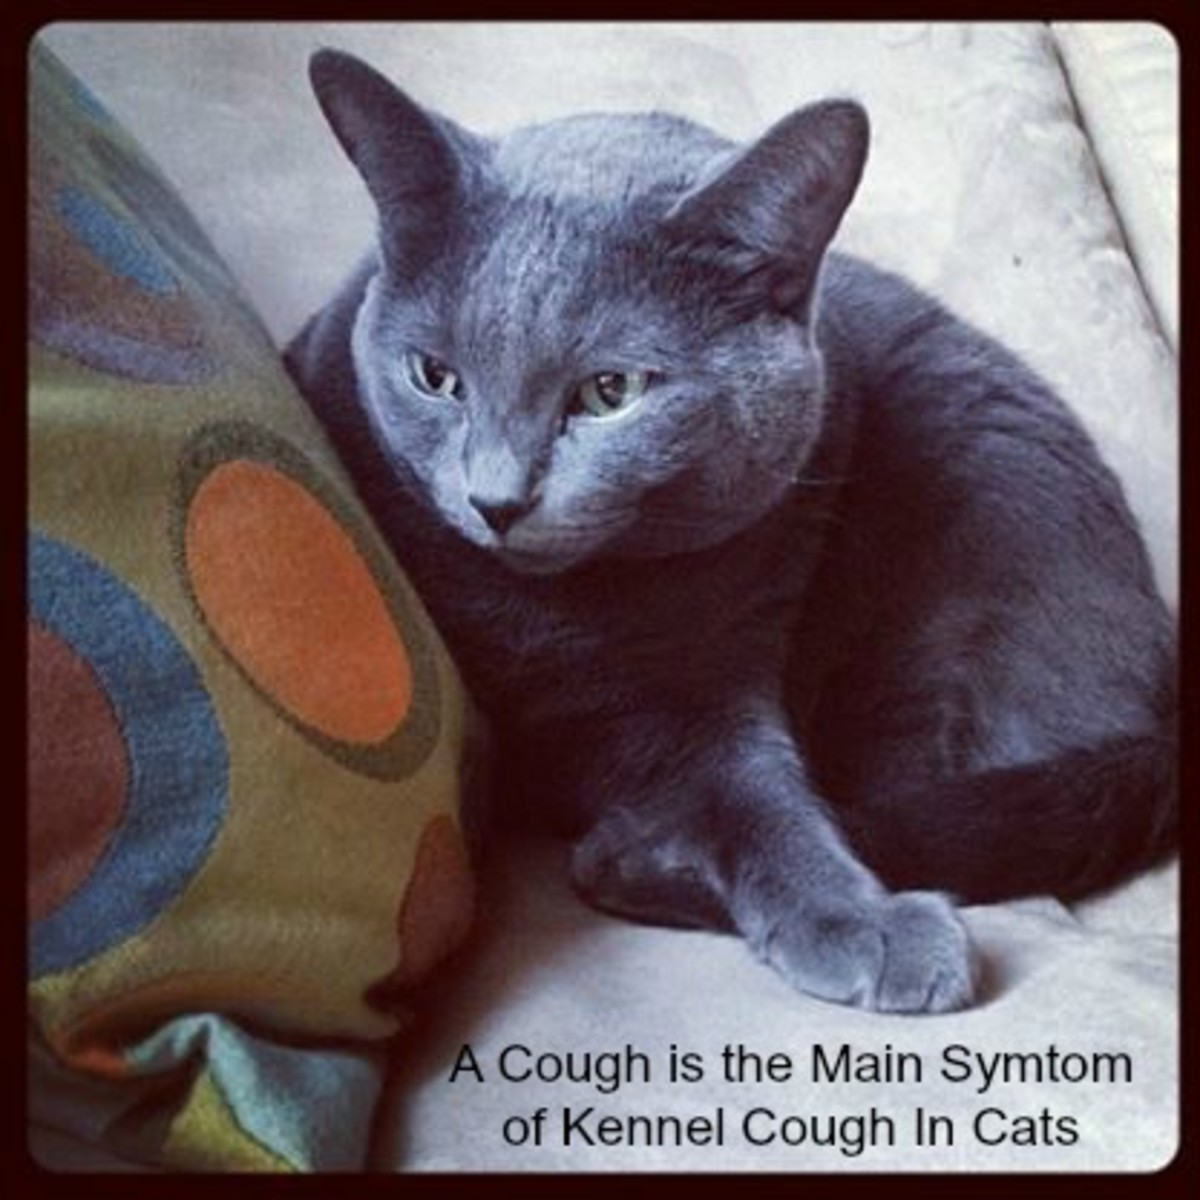 A soft cough is the main symptom of kennel cough in cats.